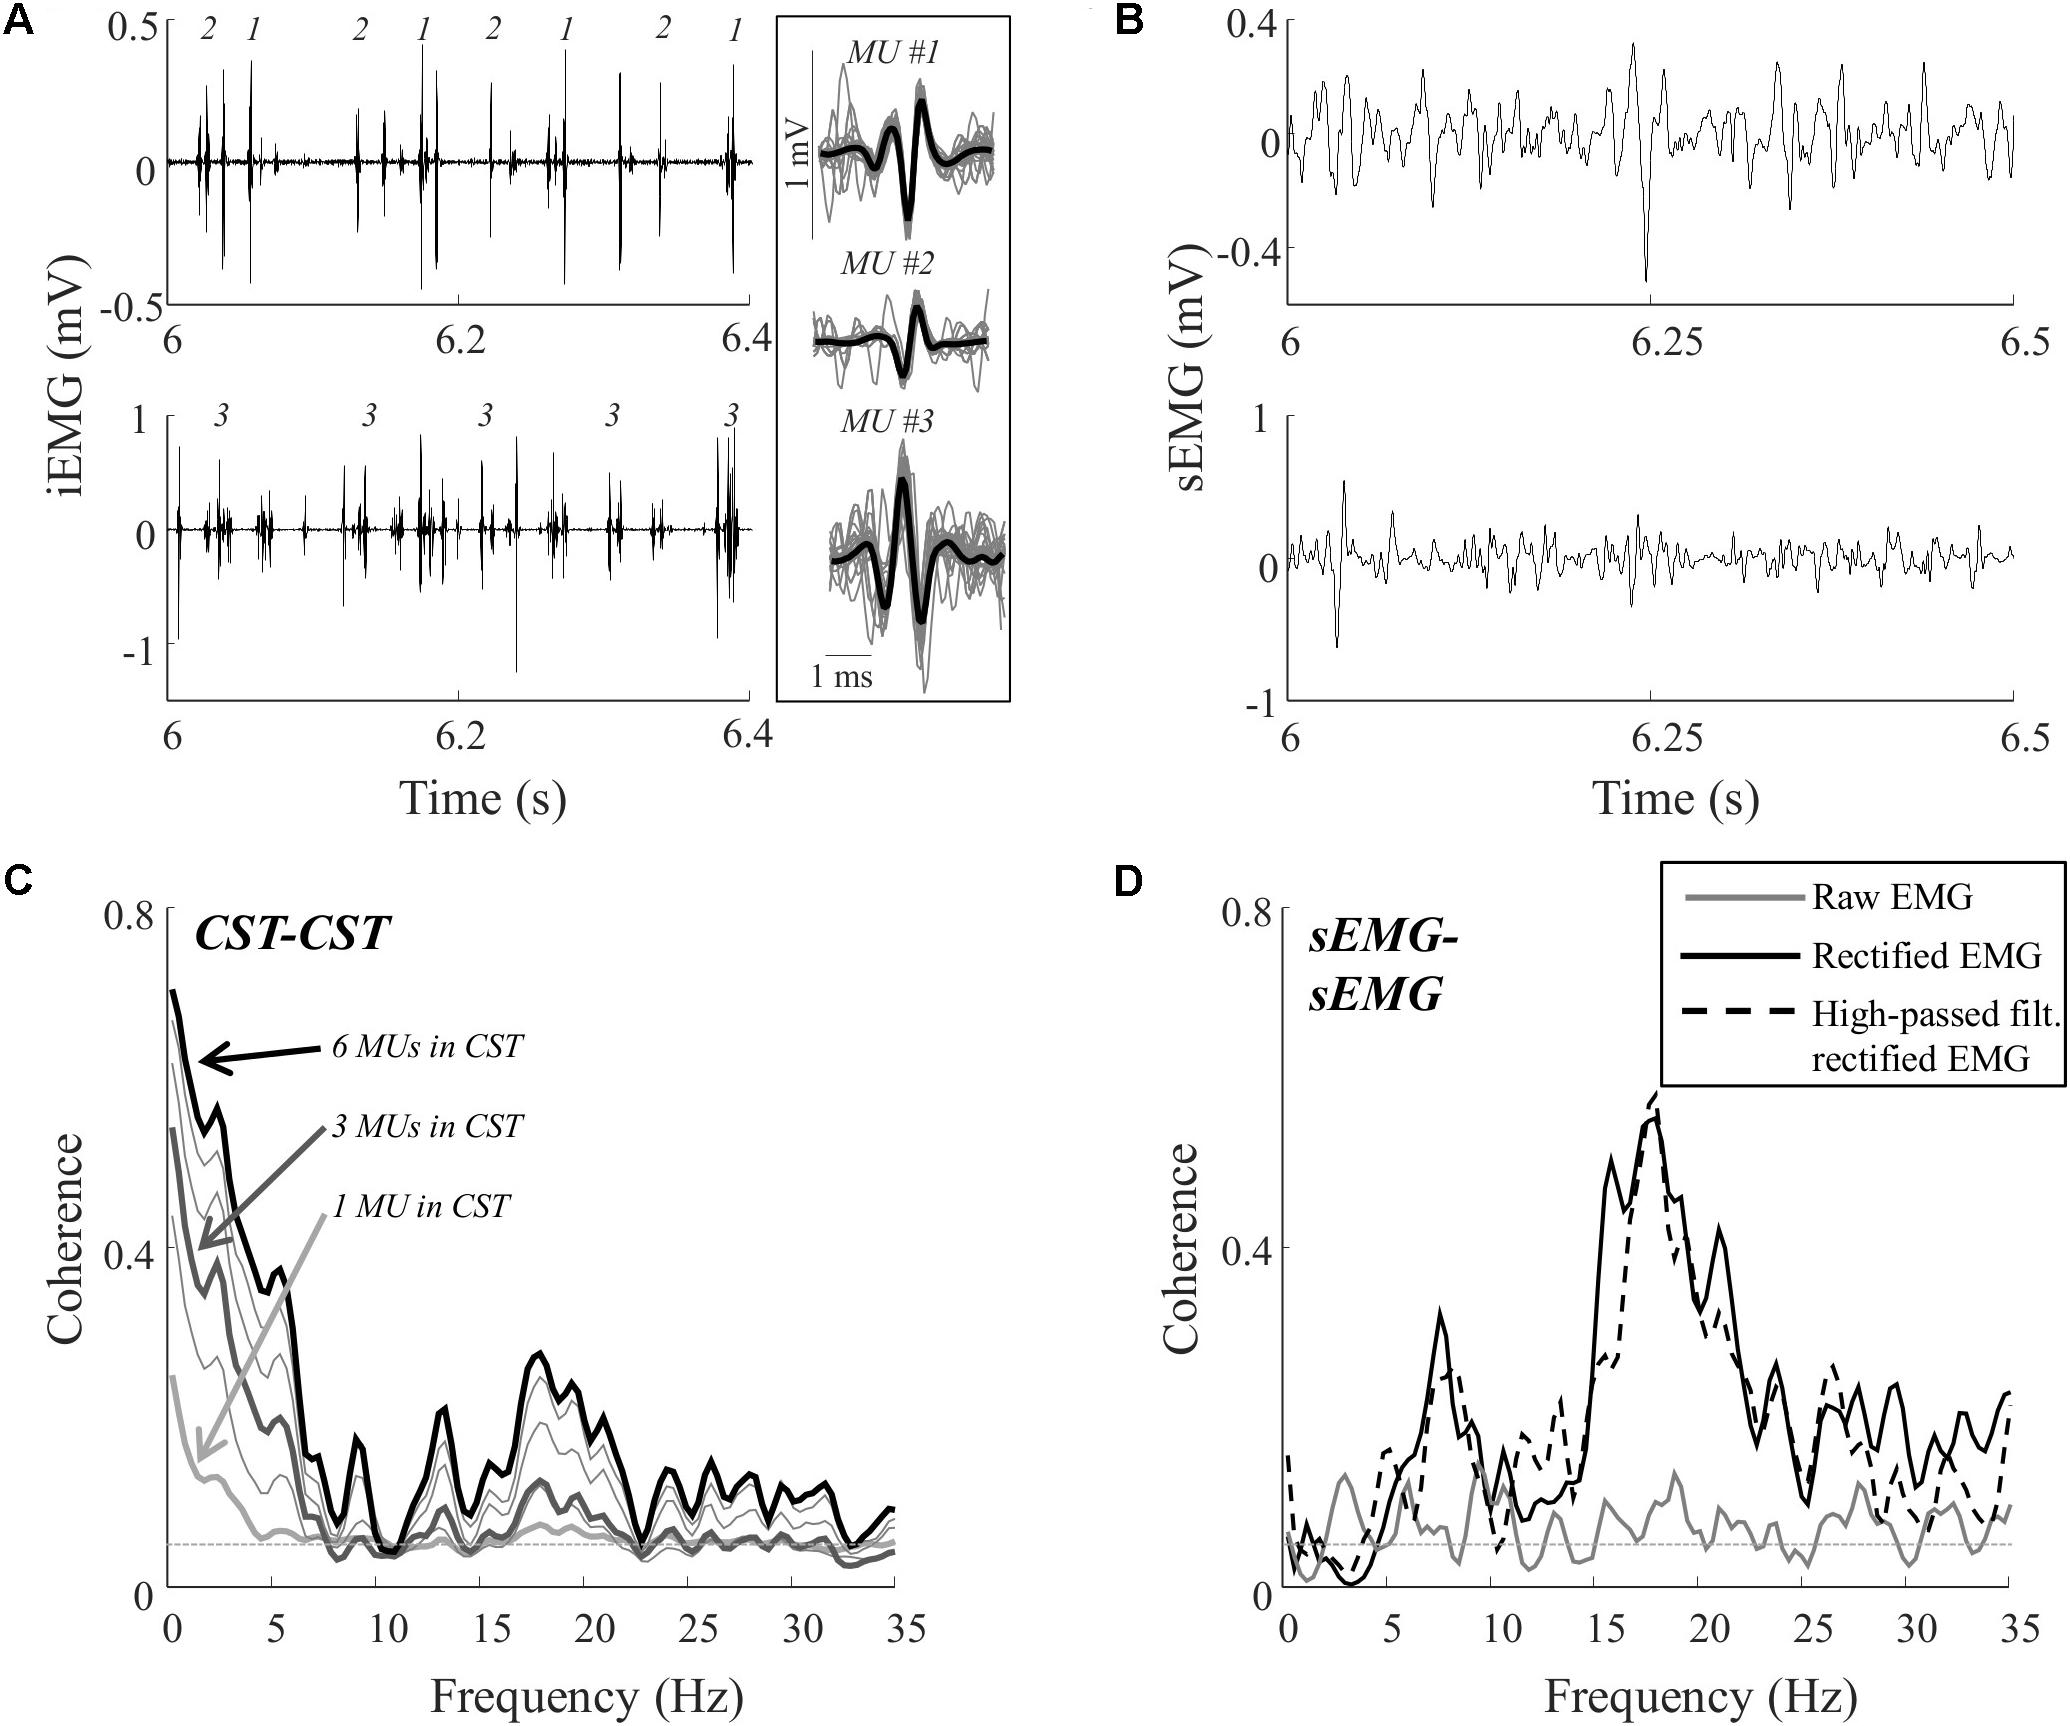 Frontiers Coherence Of The Surface Emg And Common Synaptic Input Figure 9 Block Diagram Signal Via Human Finger After Applying